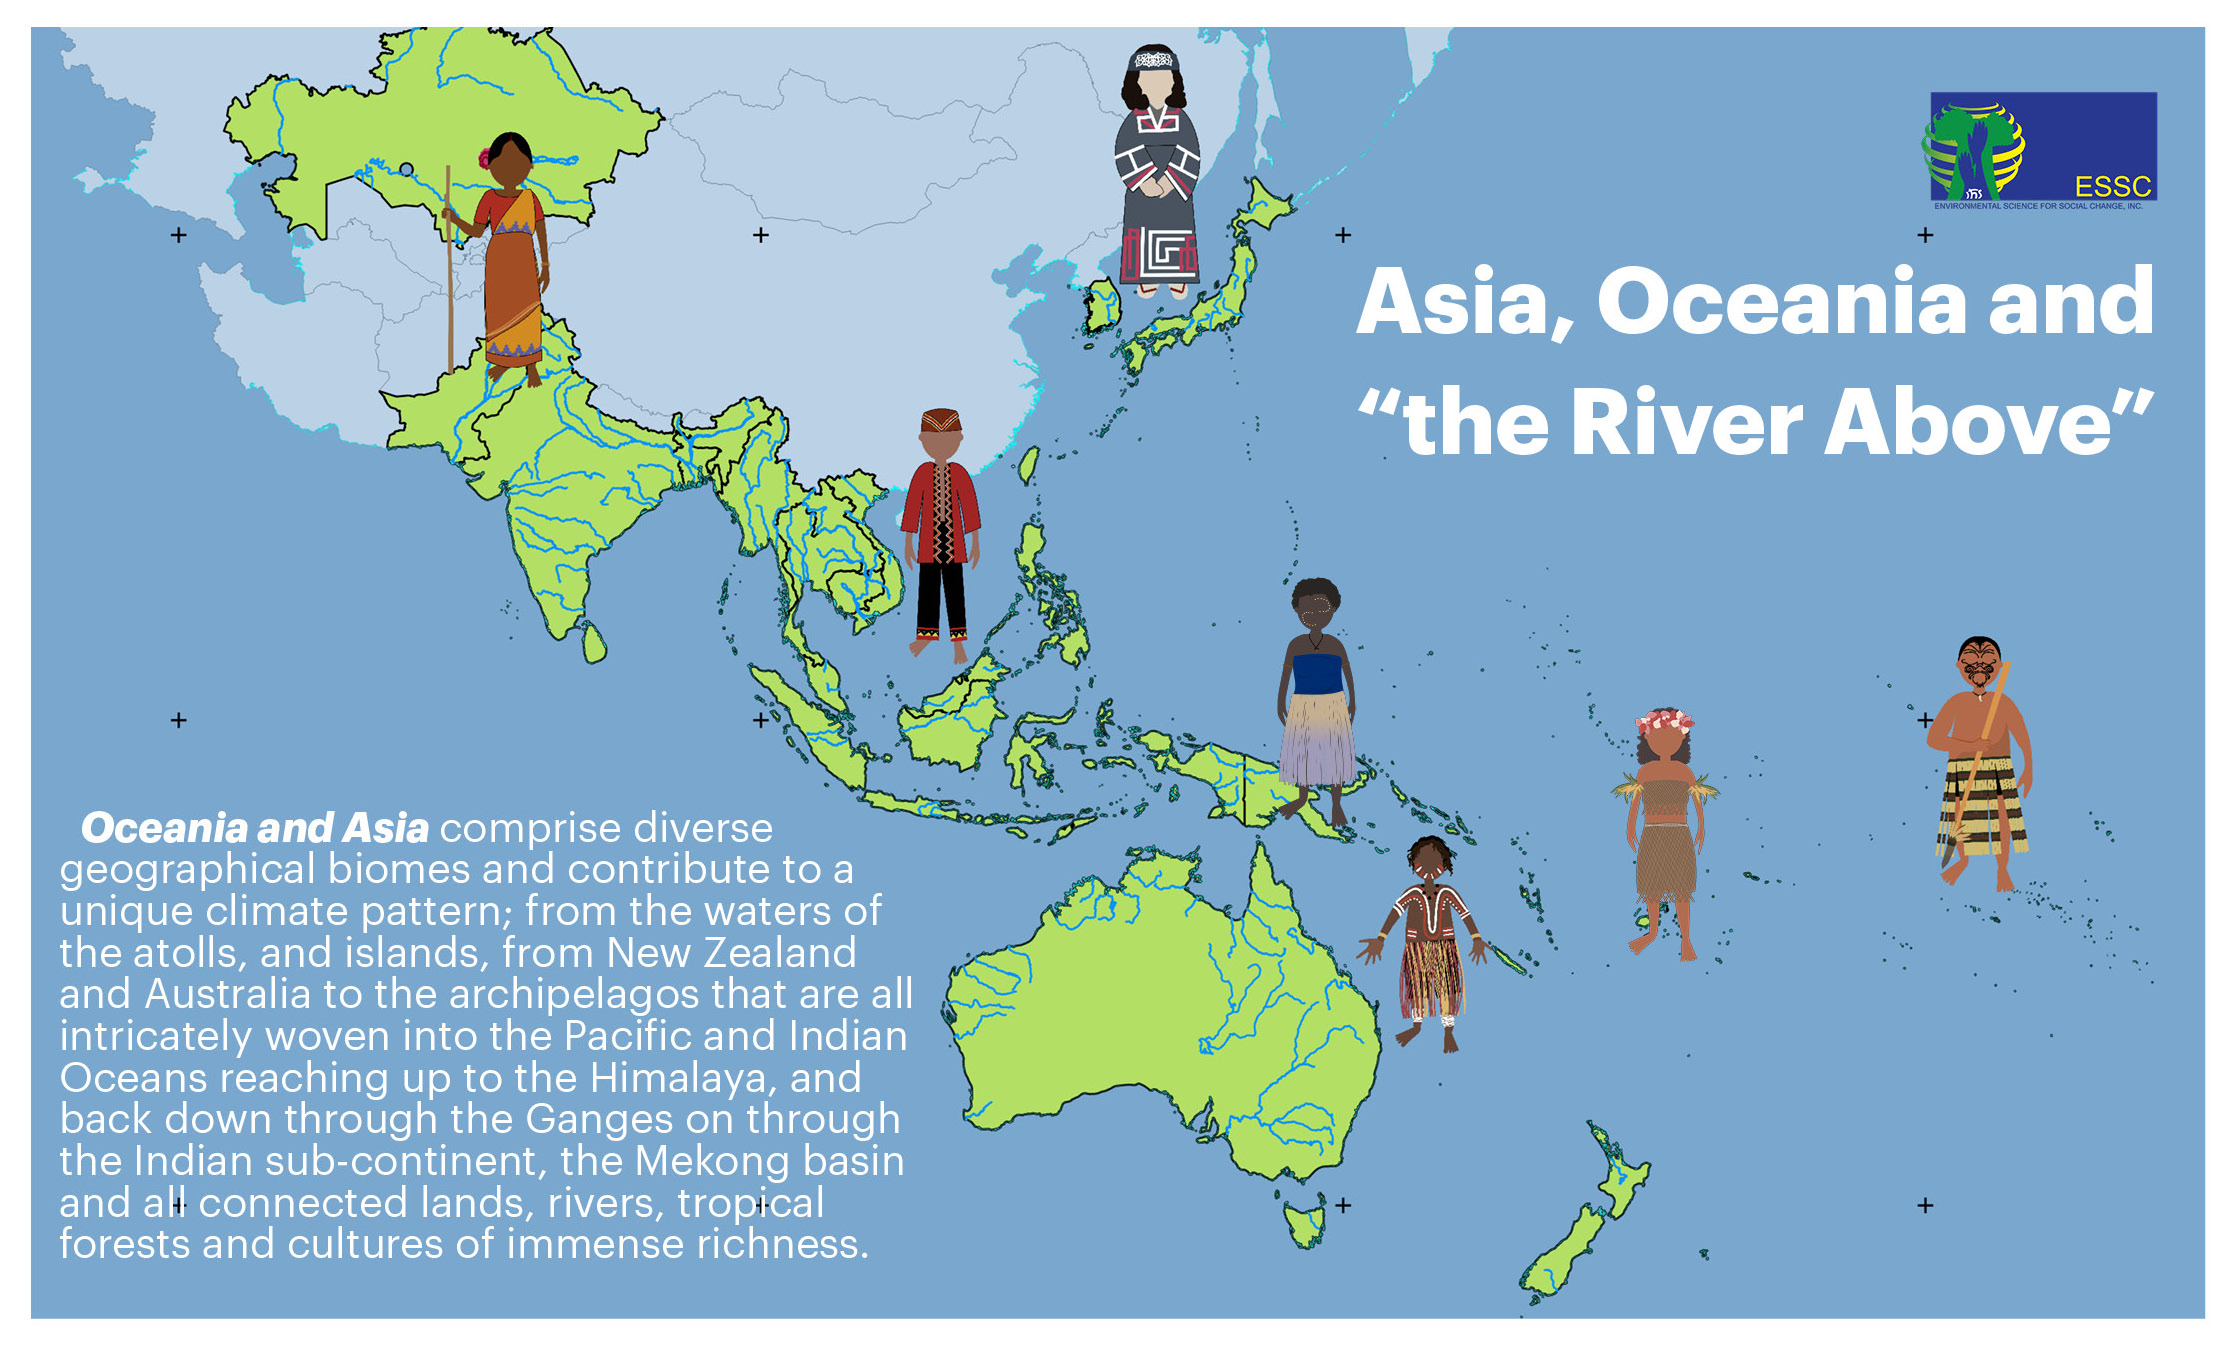 Picture of: River Above Asia Oceania Ecclesial Network For Forests Oceans And Peoples Ecology And Jesuits In Communication